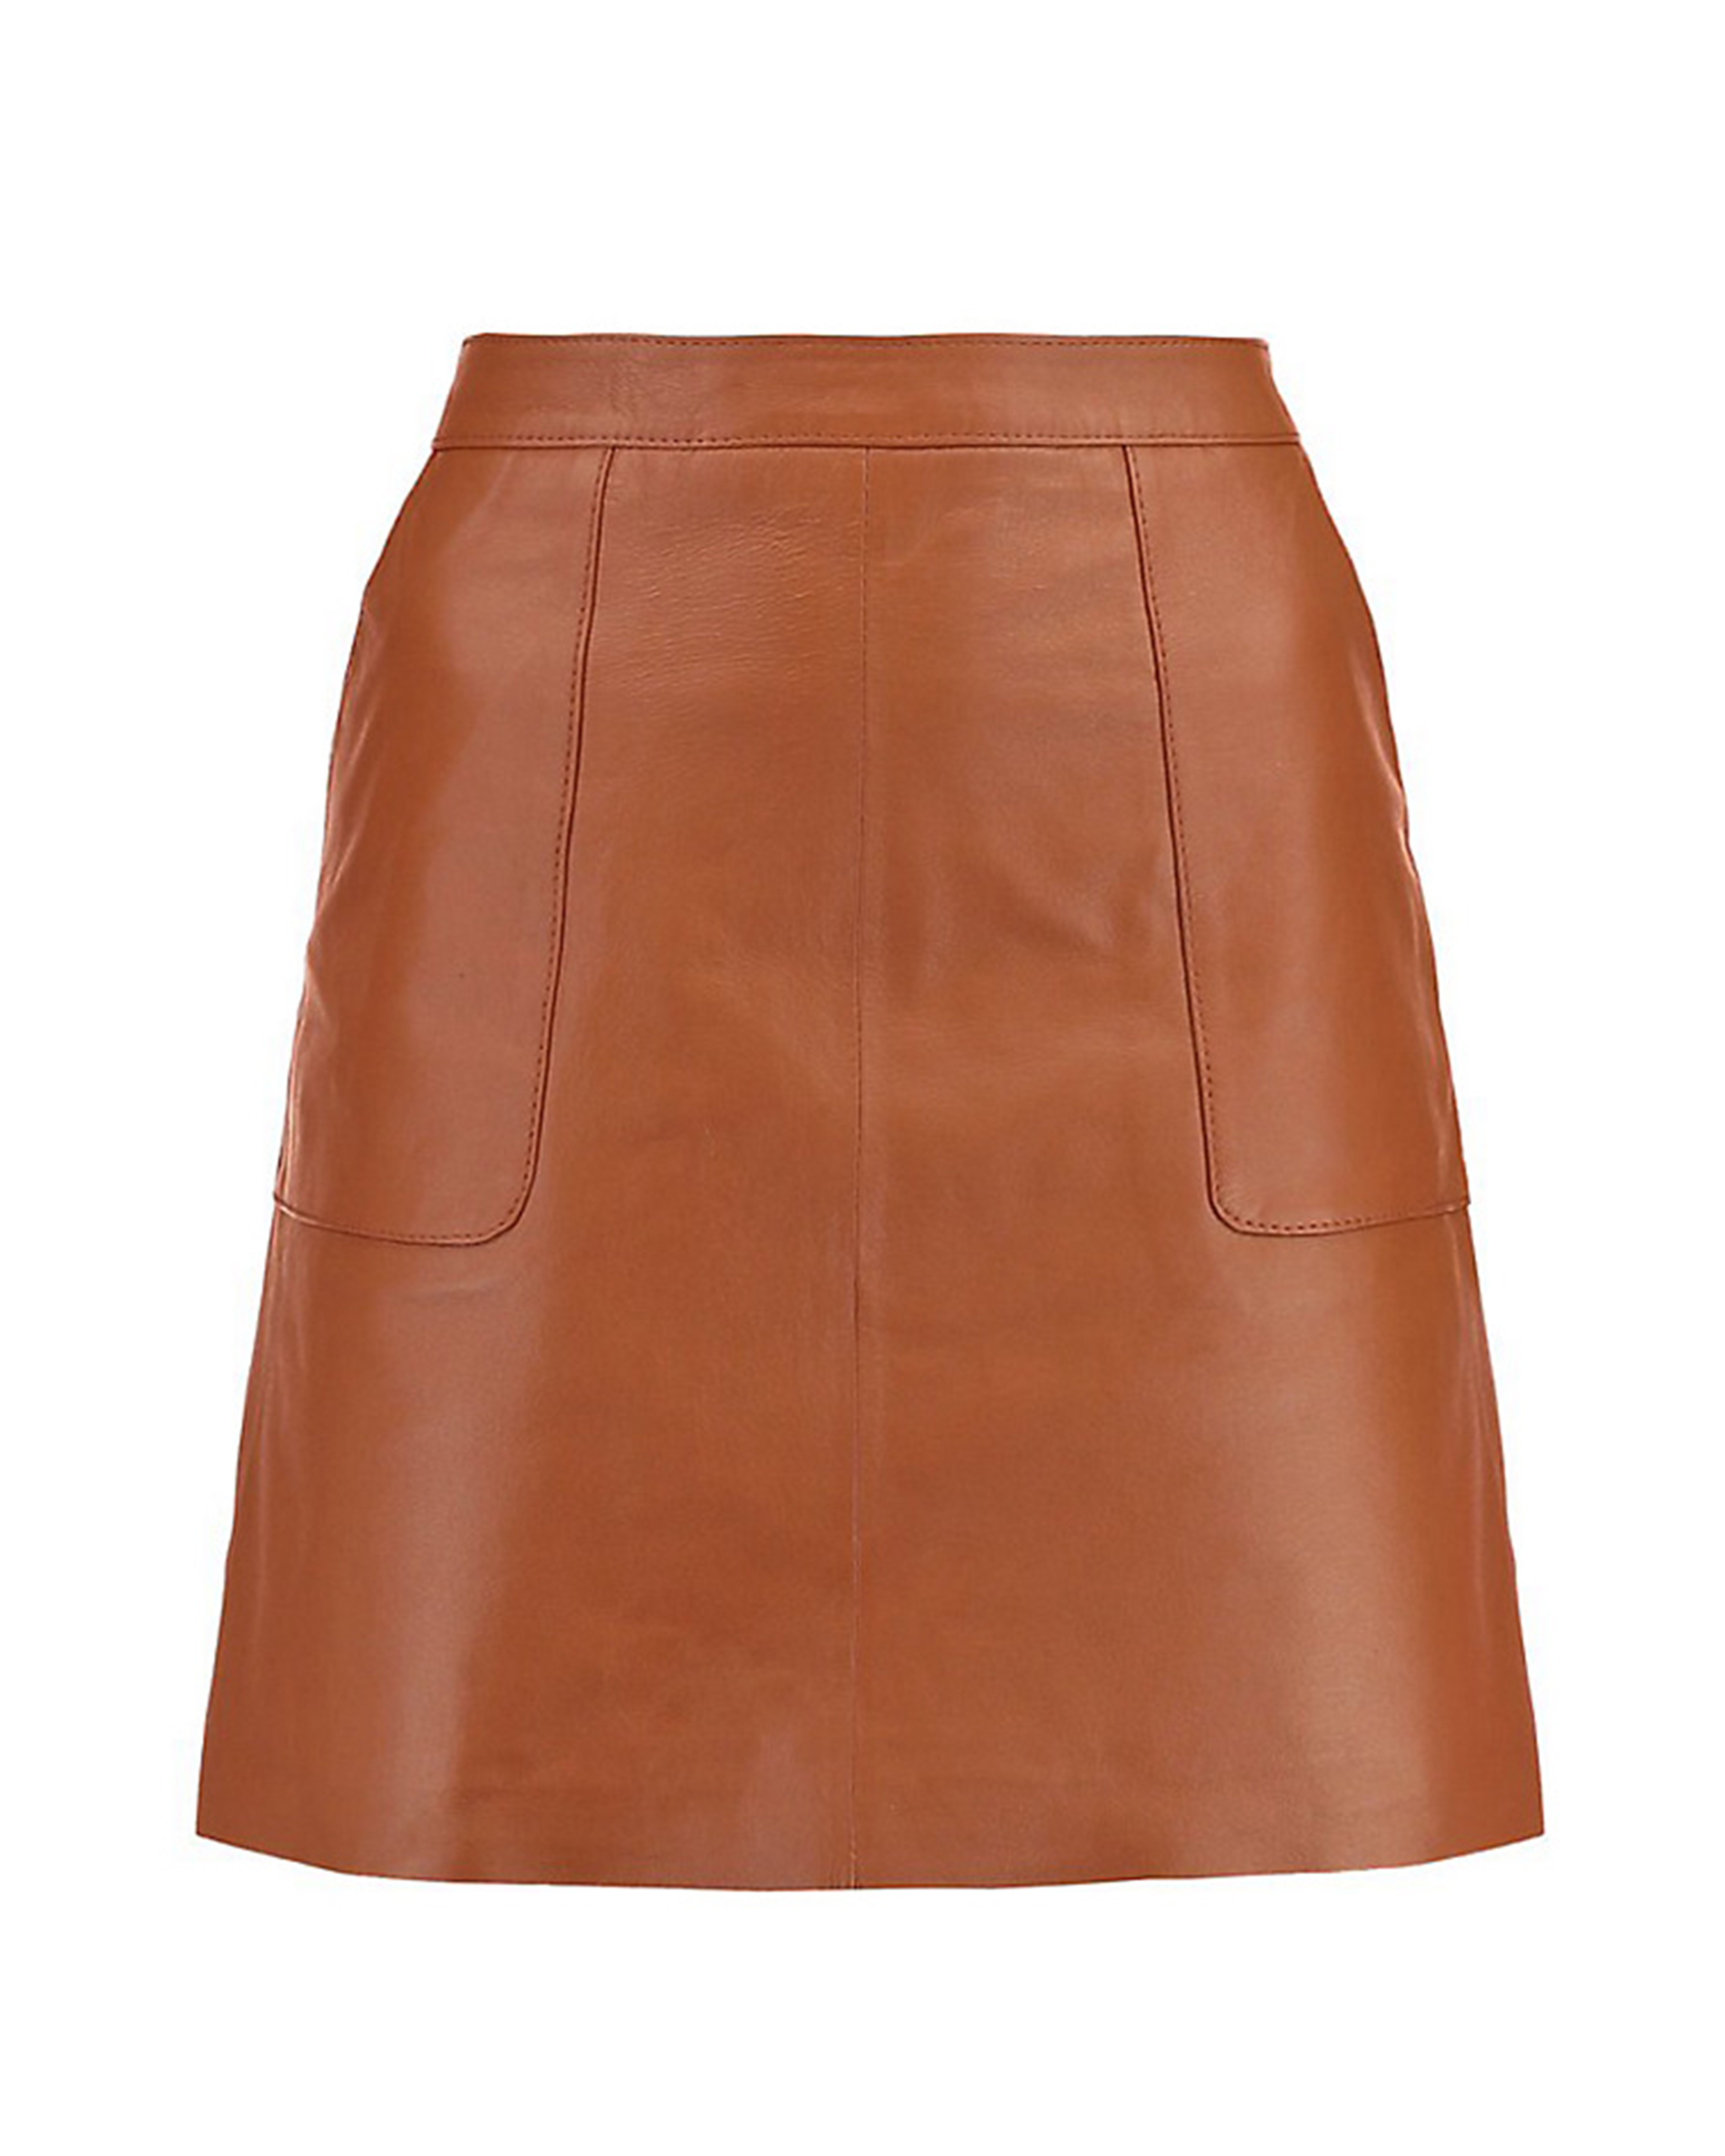 Warehouse leather pocket A-line skirt